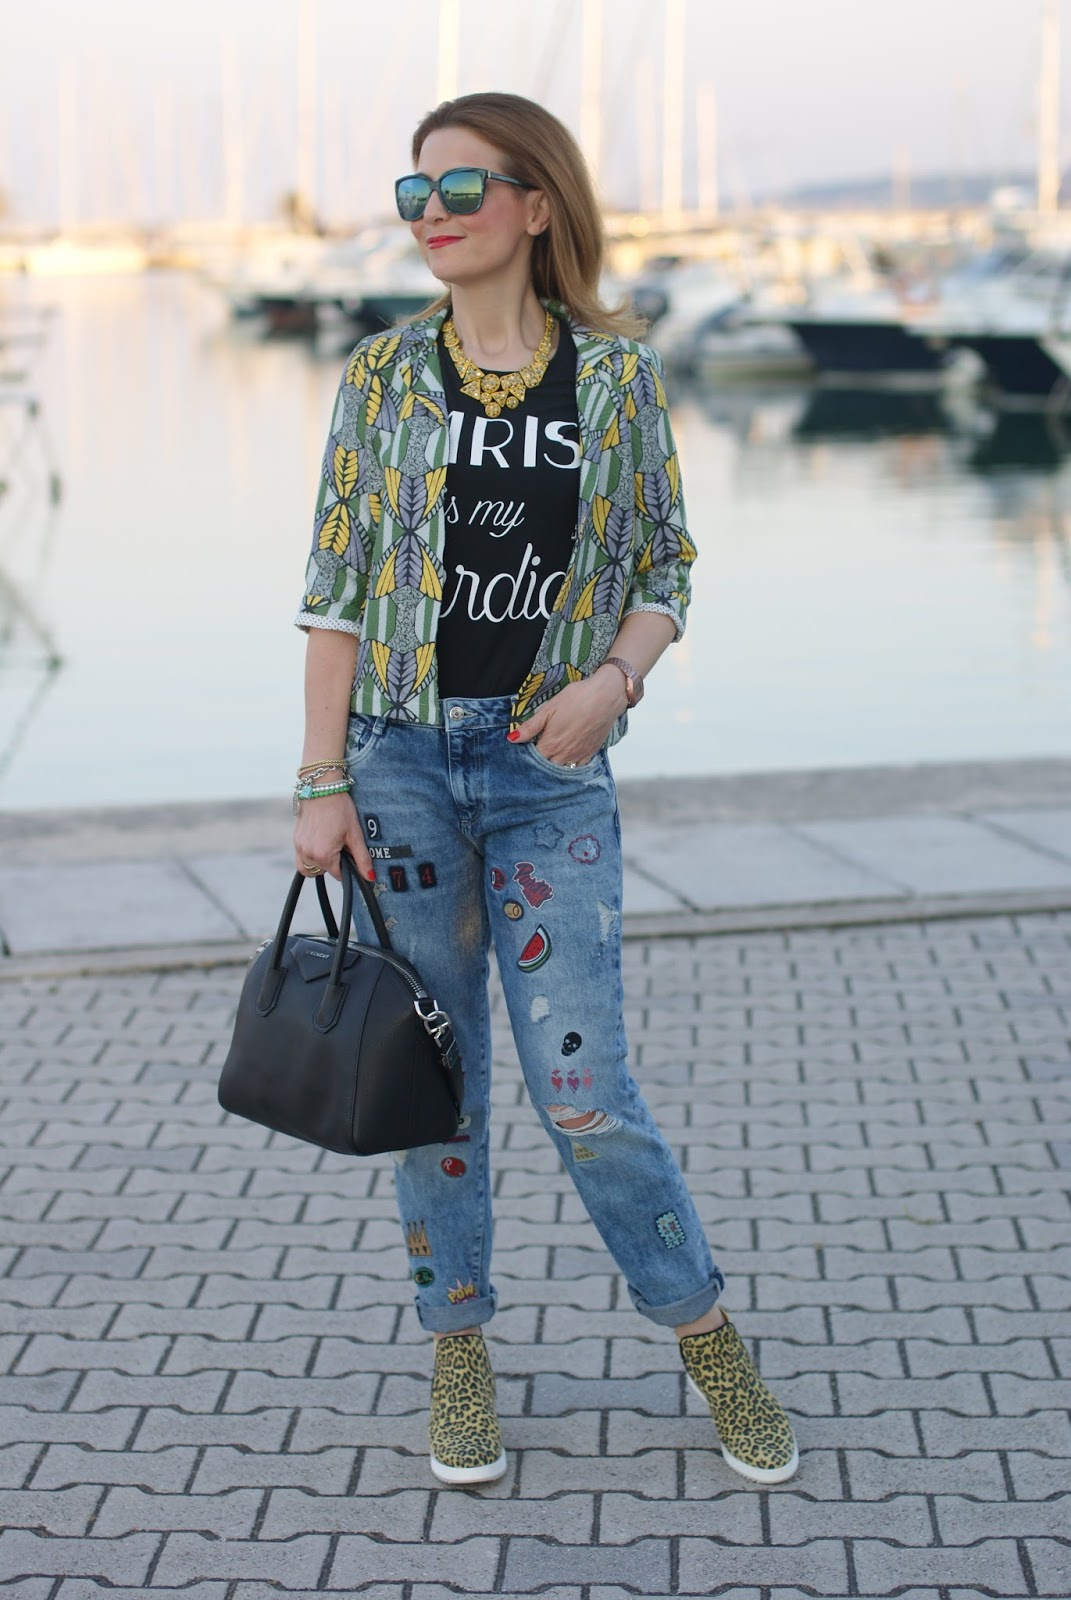 Zara patch jeans, uno8uno shoes, 181 tronchetti, Fashion and Cookies fashion blog, fashion blogger style